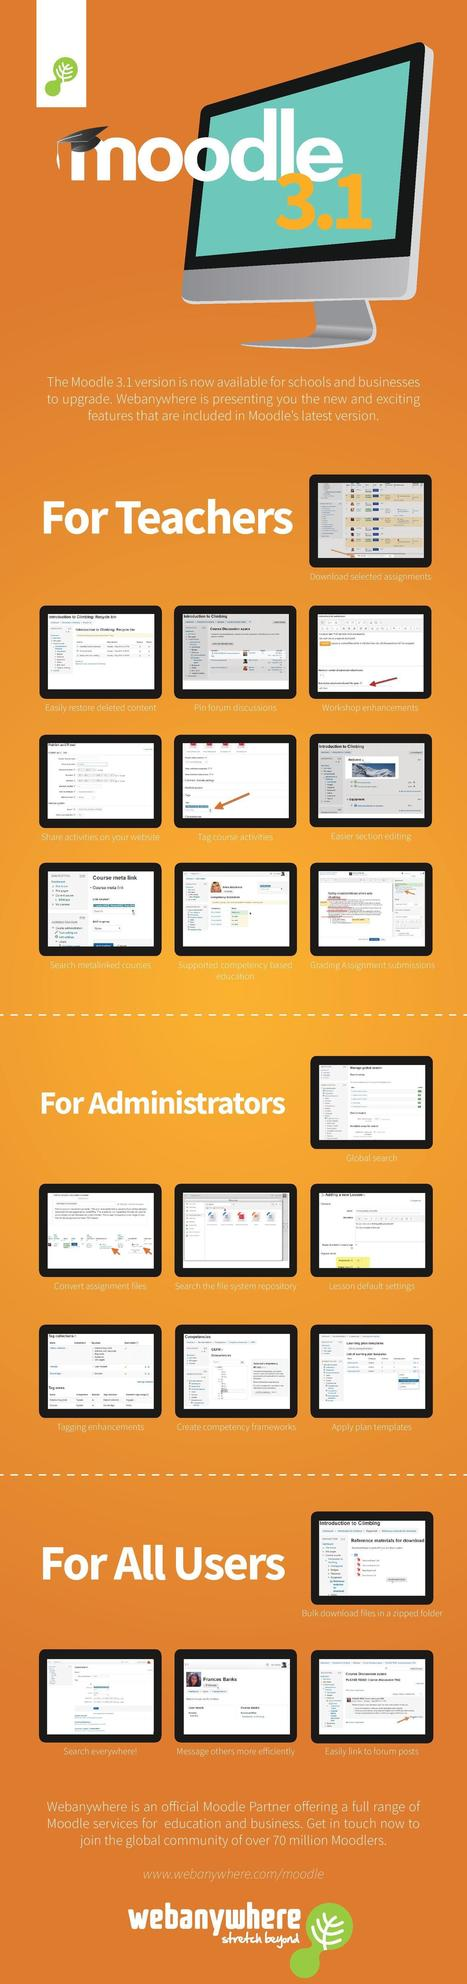 Moodle 3.1 New Features Infographic - e-Learning Infographics | mOOdle_ation[s] | Scoop.it